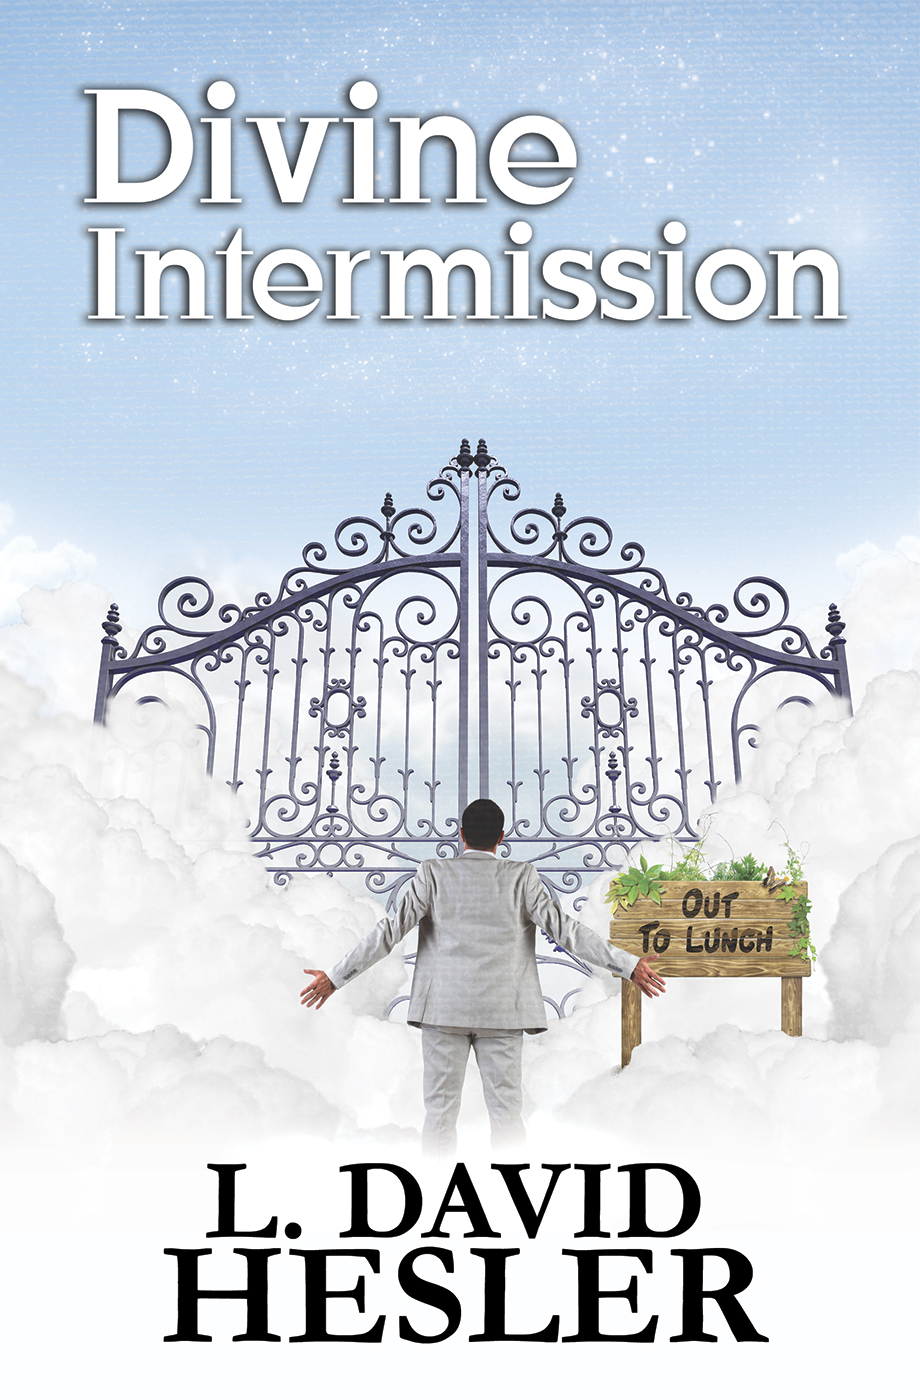 Divine Intermission (Books 1-3) - Available in the following formats:eBook & Print on AmazoneBook on Barnes & NoblePrint on Barnes & NobleeBook on Apple Books, Kobo, & Others